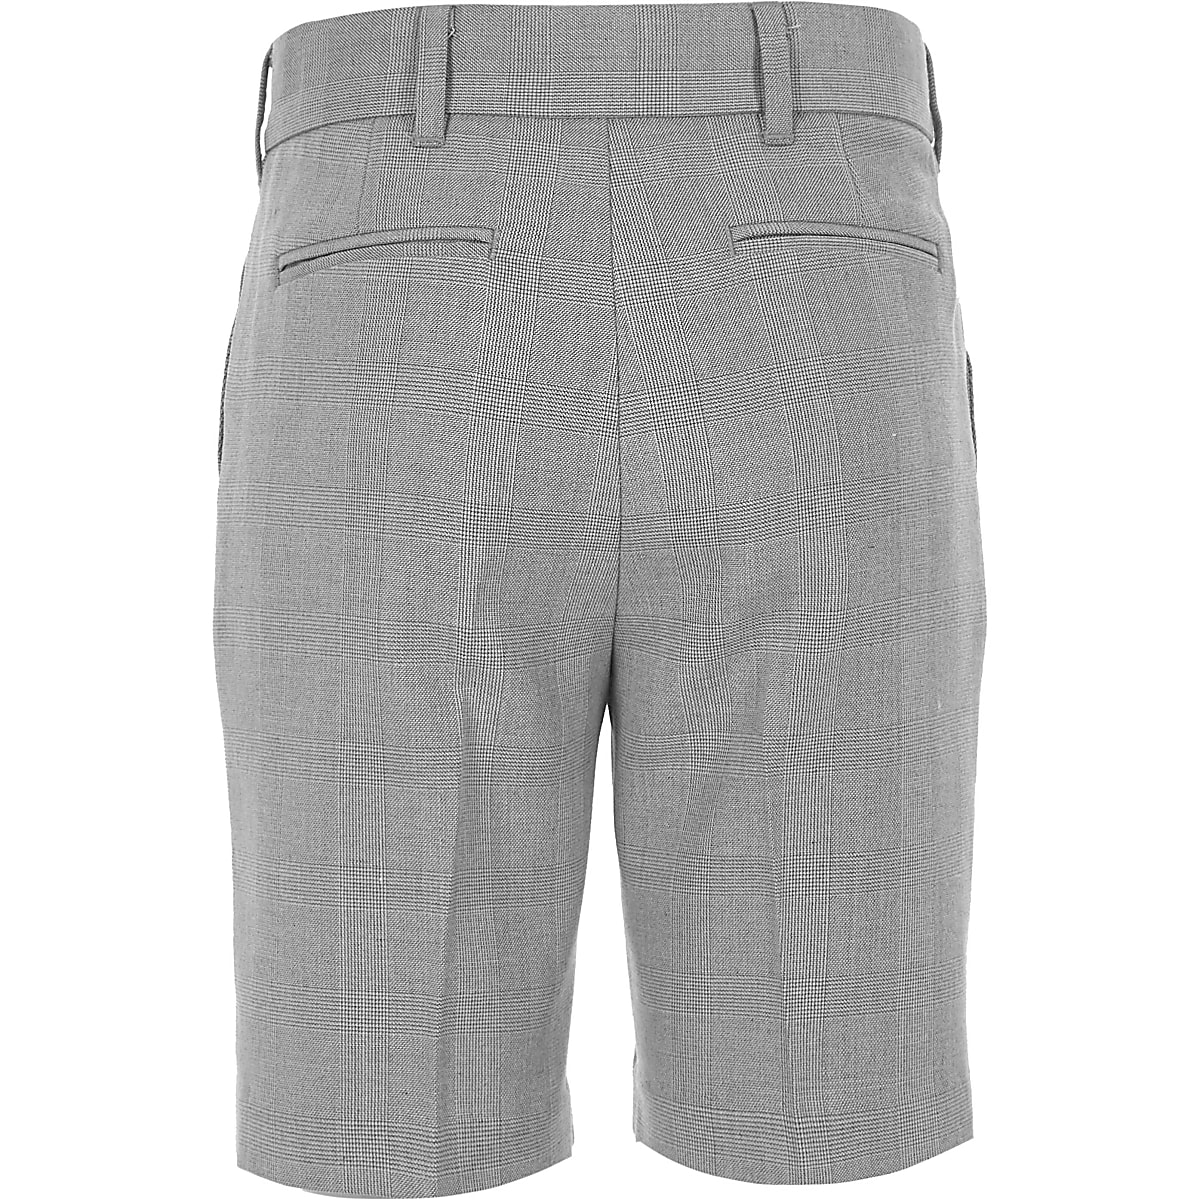 0d4fa4cde Boys grey check suit shorts - Chino Shorts - Shorts - boys